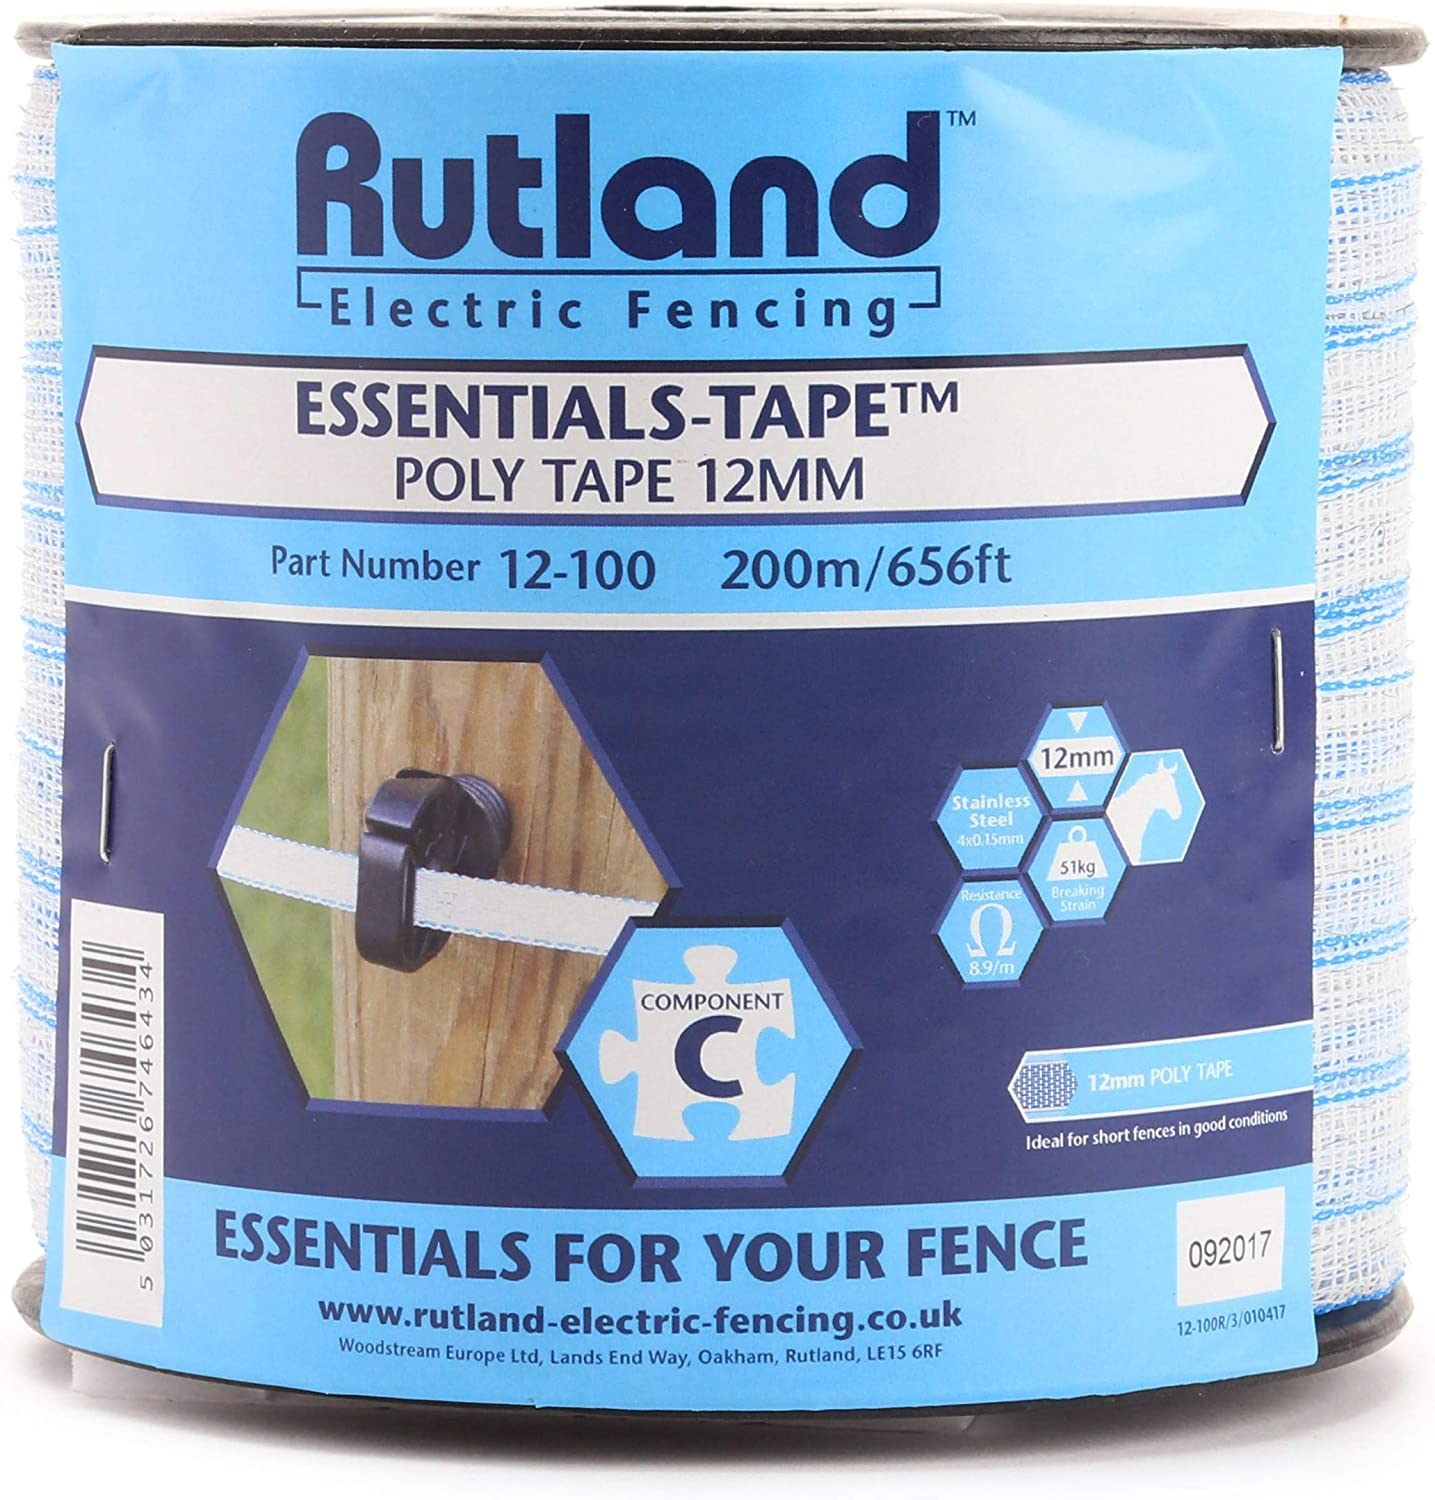 Tractor Factory Shire Electric Fence Polywire 3 Stainless Steel Wire Strands 250 metres x 2mm did